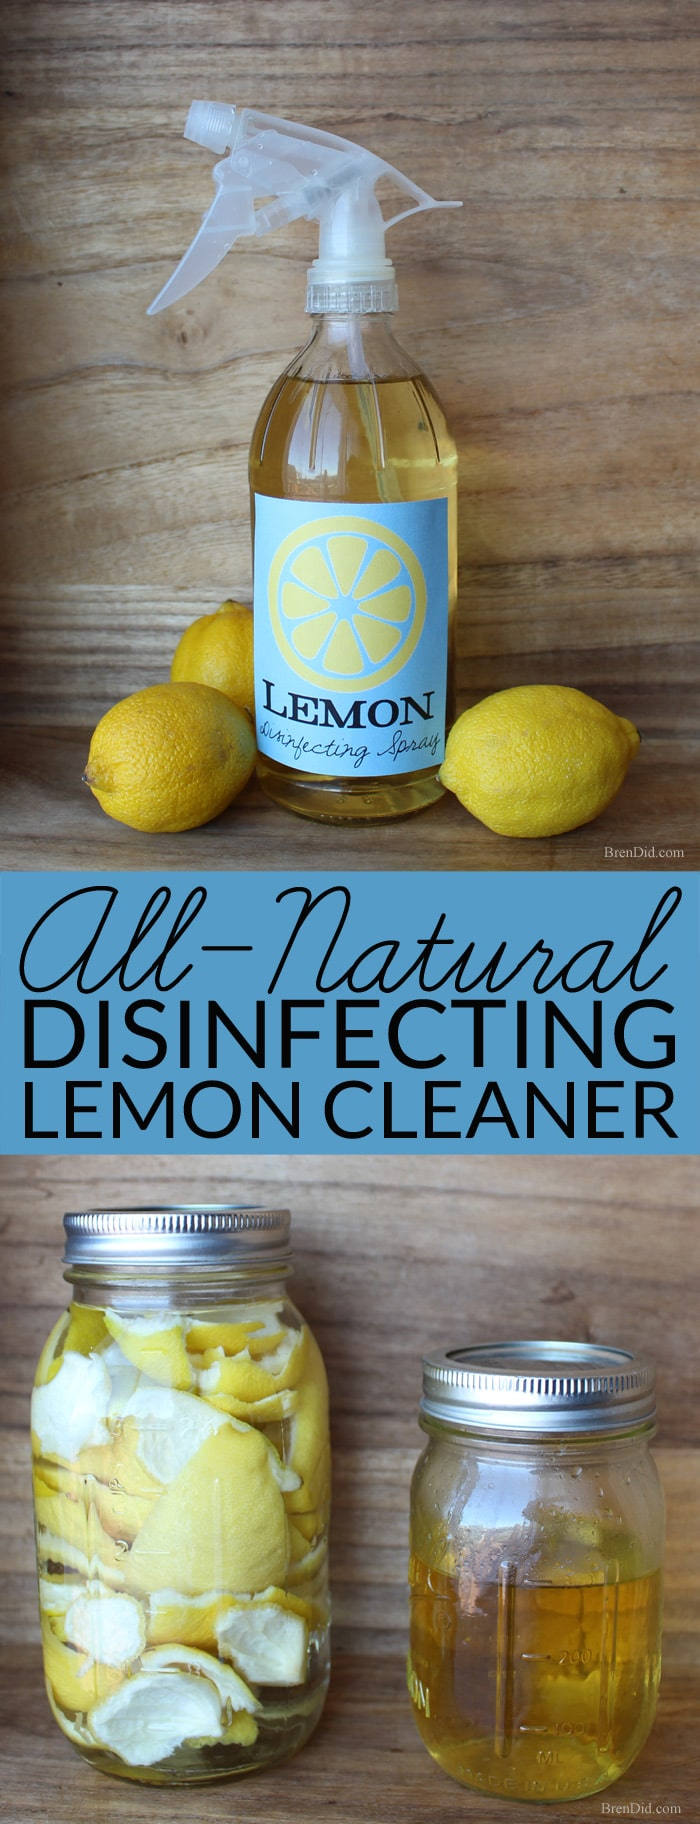 Lemon Infused Disinfectant Spray Cleaner - Bren Did